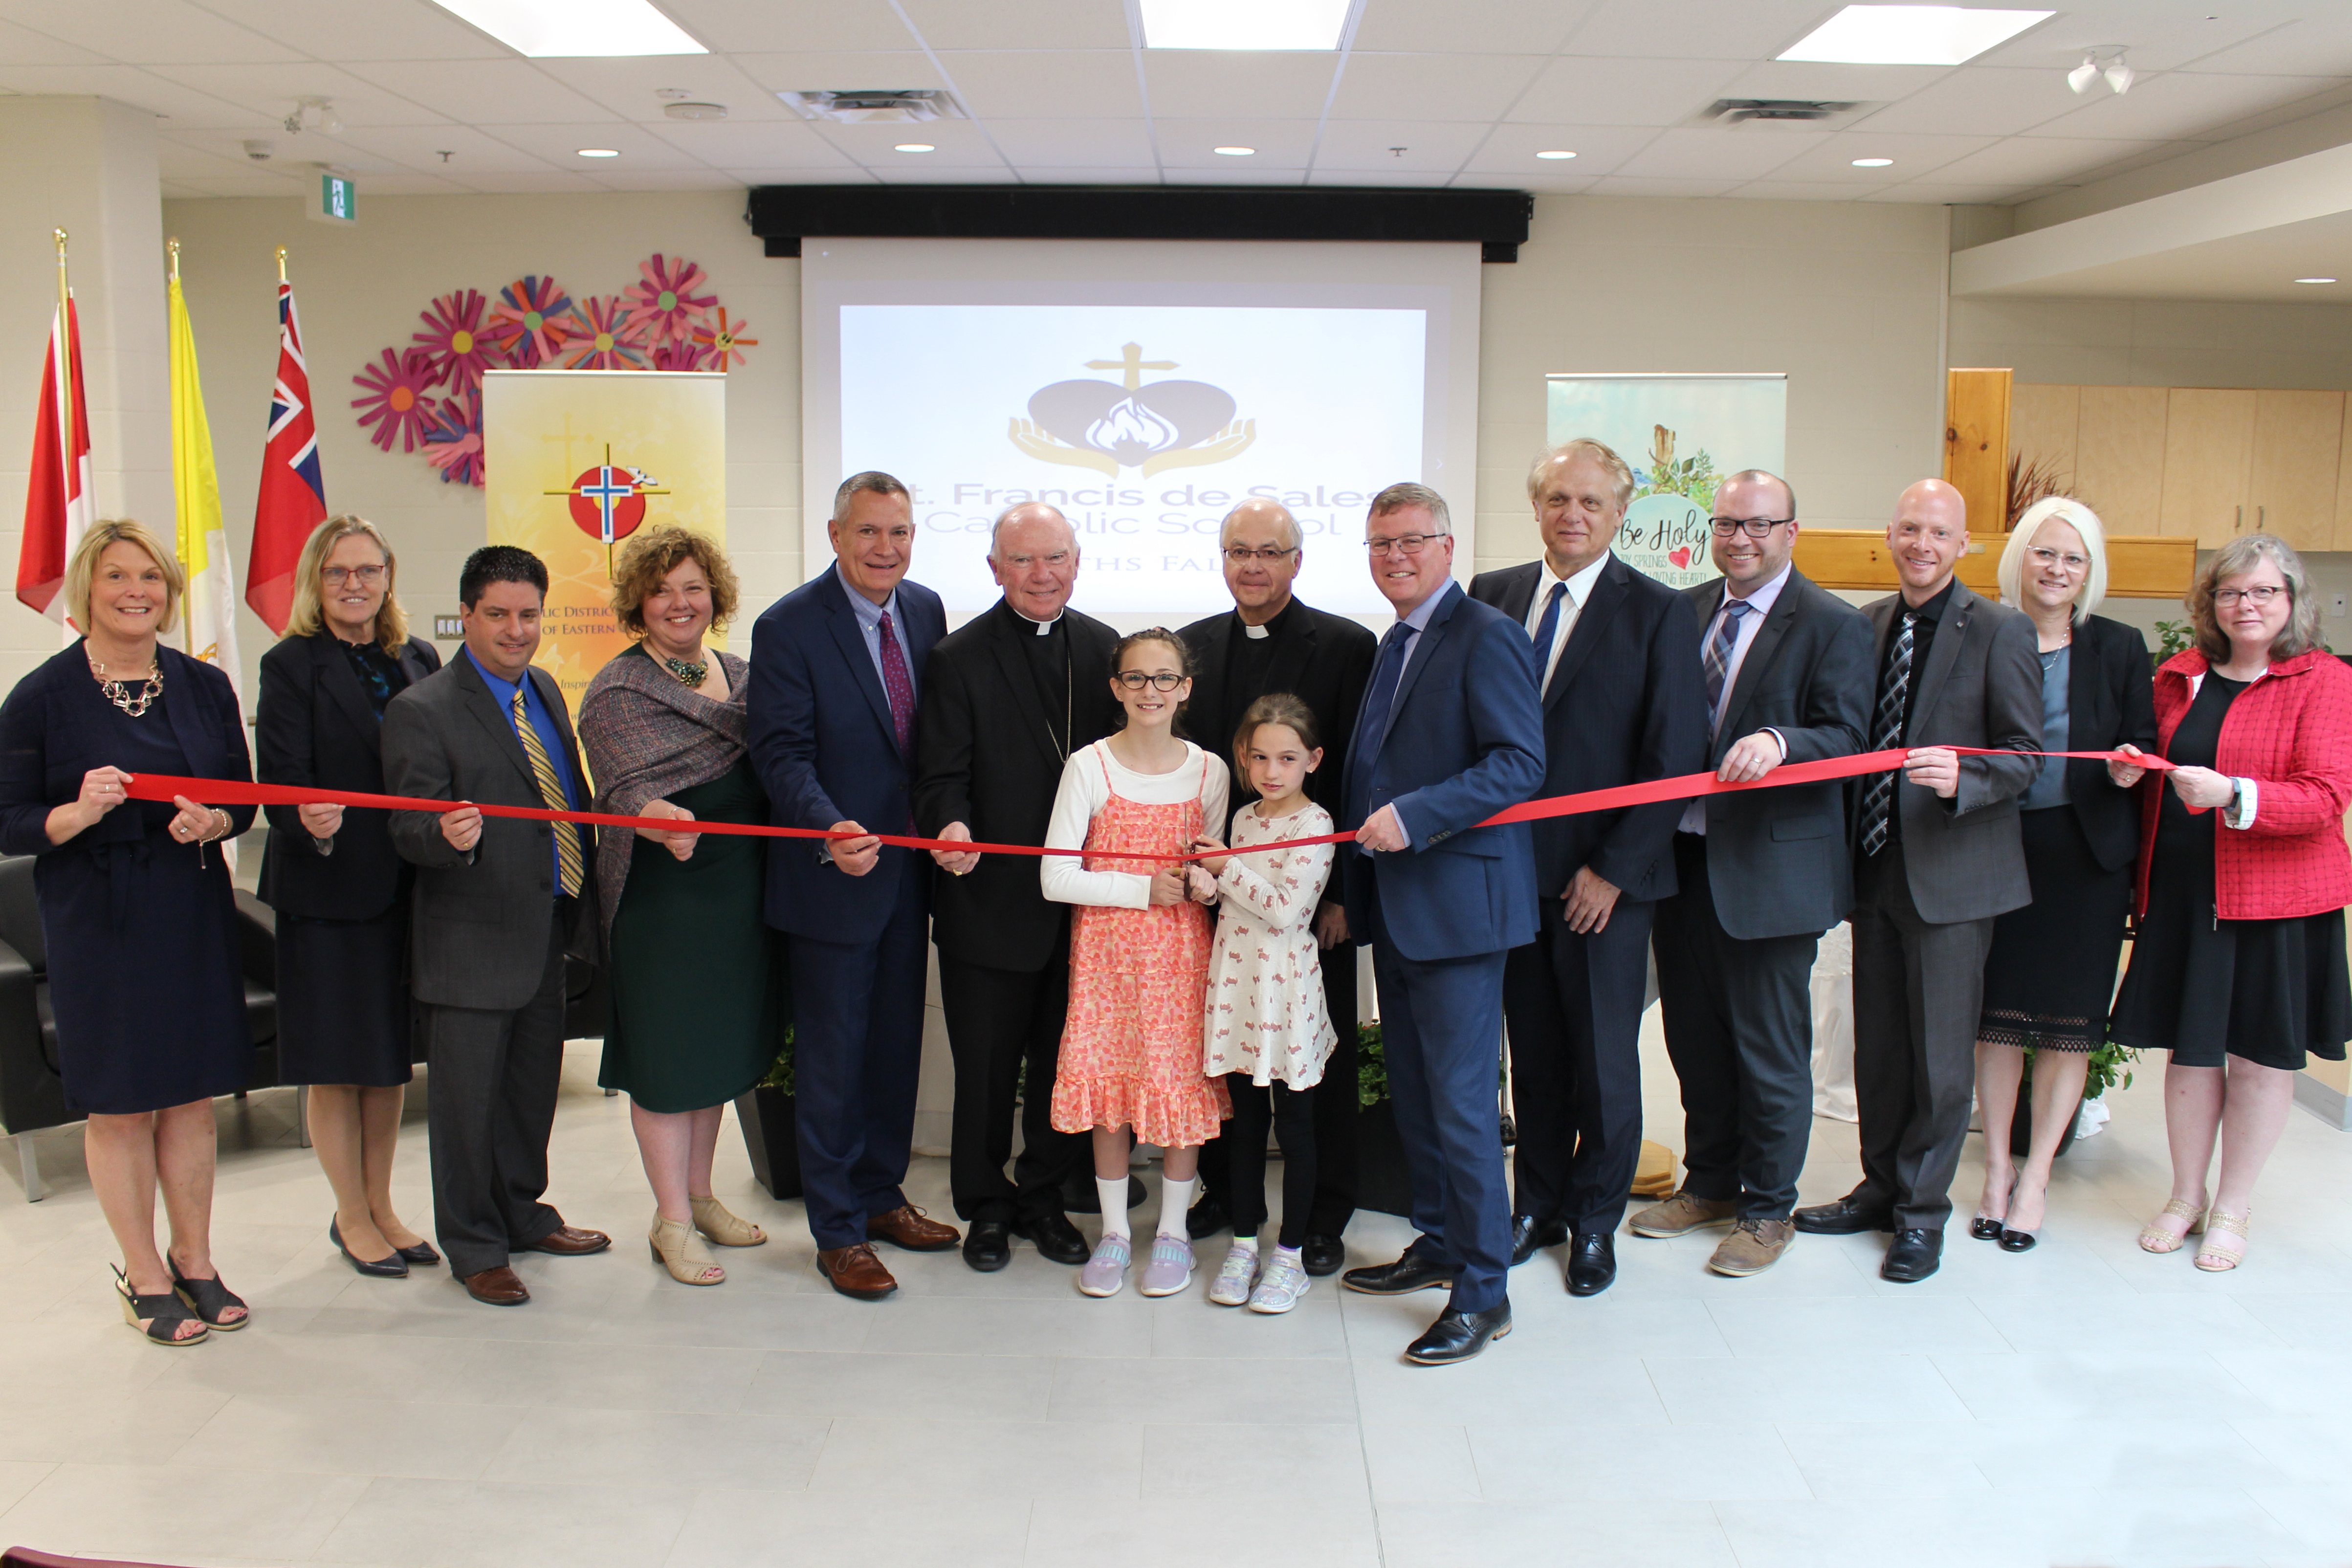 A group of staff, students, trustees and administrators cut the ribbon at the official opening of St. Francis de Sales Catholic School.